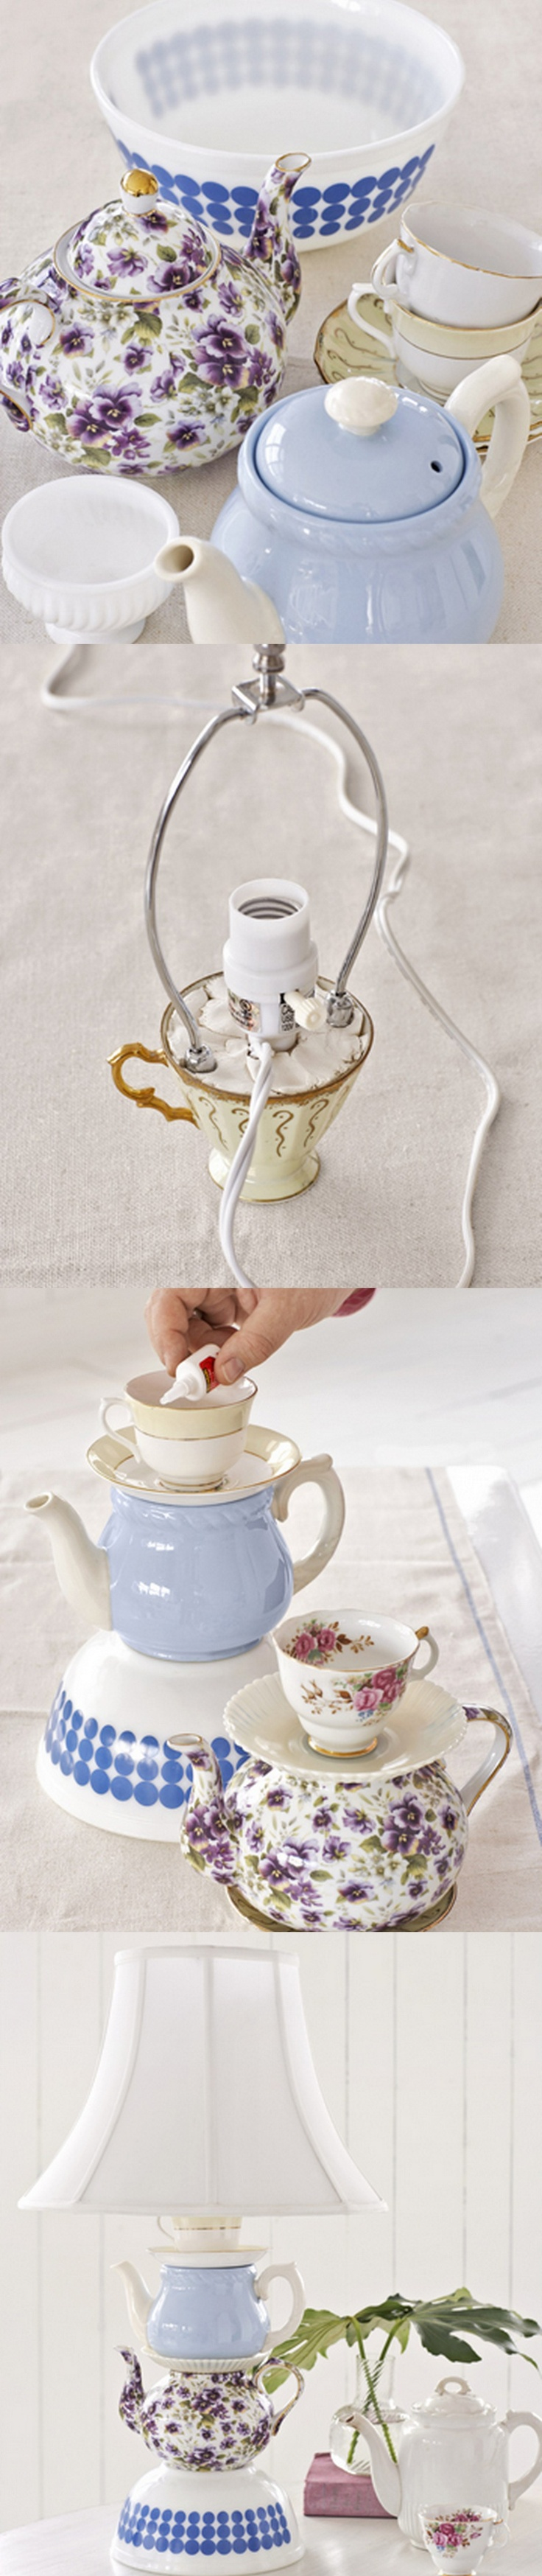 HOW TO MAKE A TEAPOT LAMP:  Read more:   http://www.countryliving.com/crafts/teapot-lamp-project-0409#slide-1